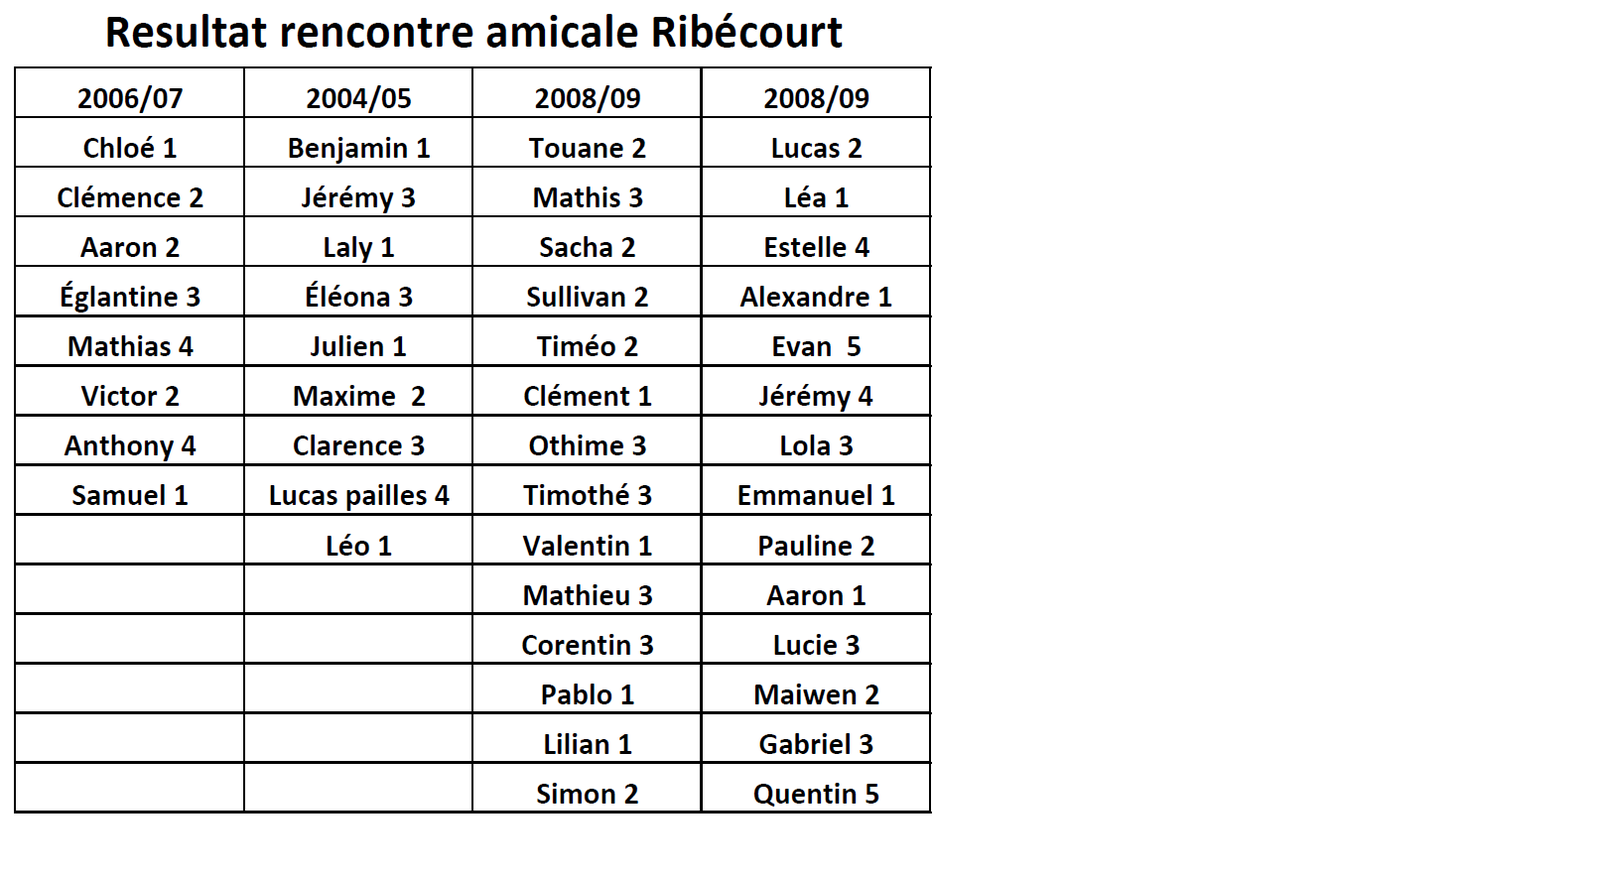 As 36 rencontres